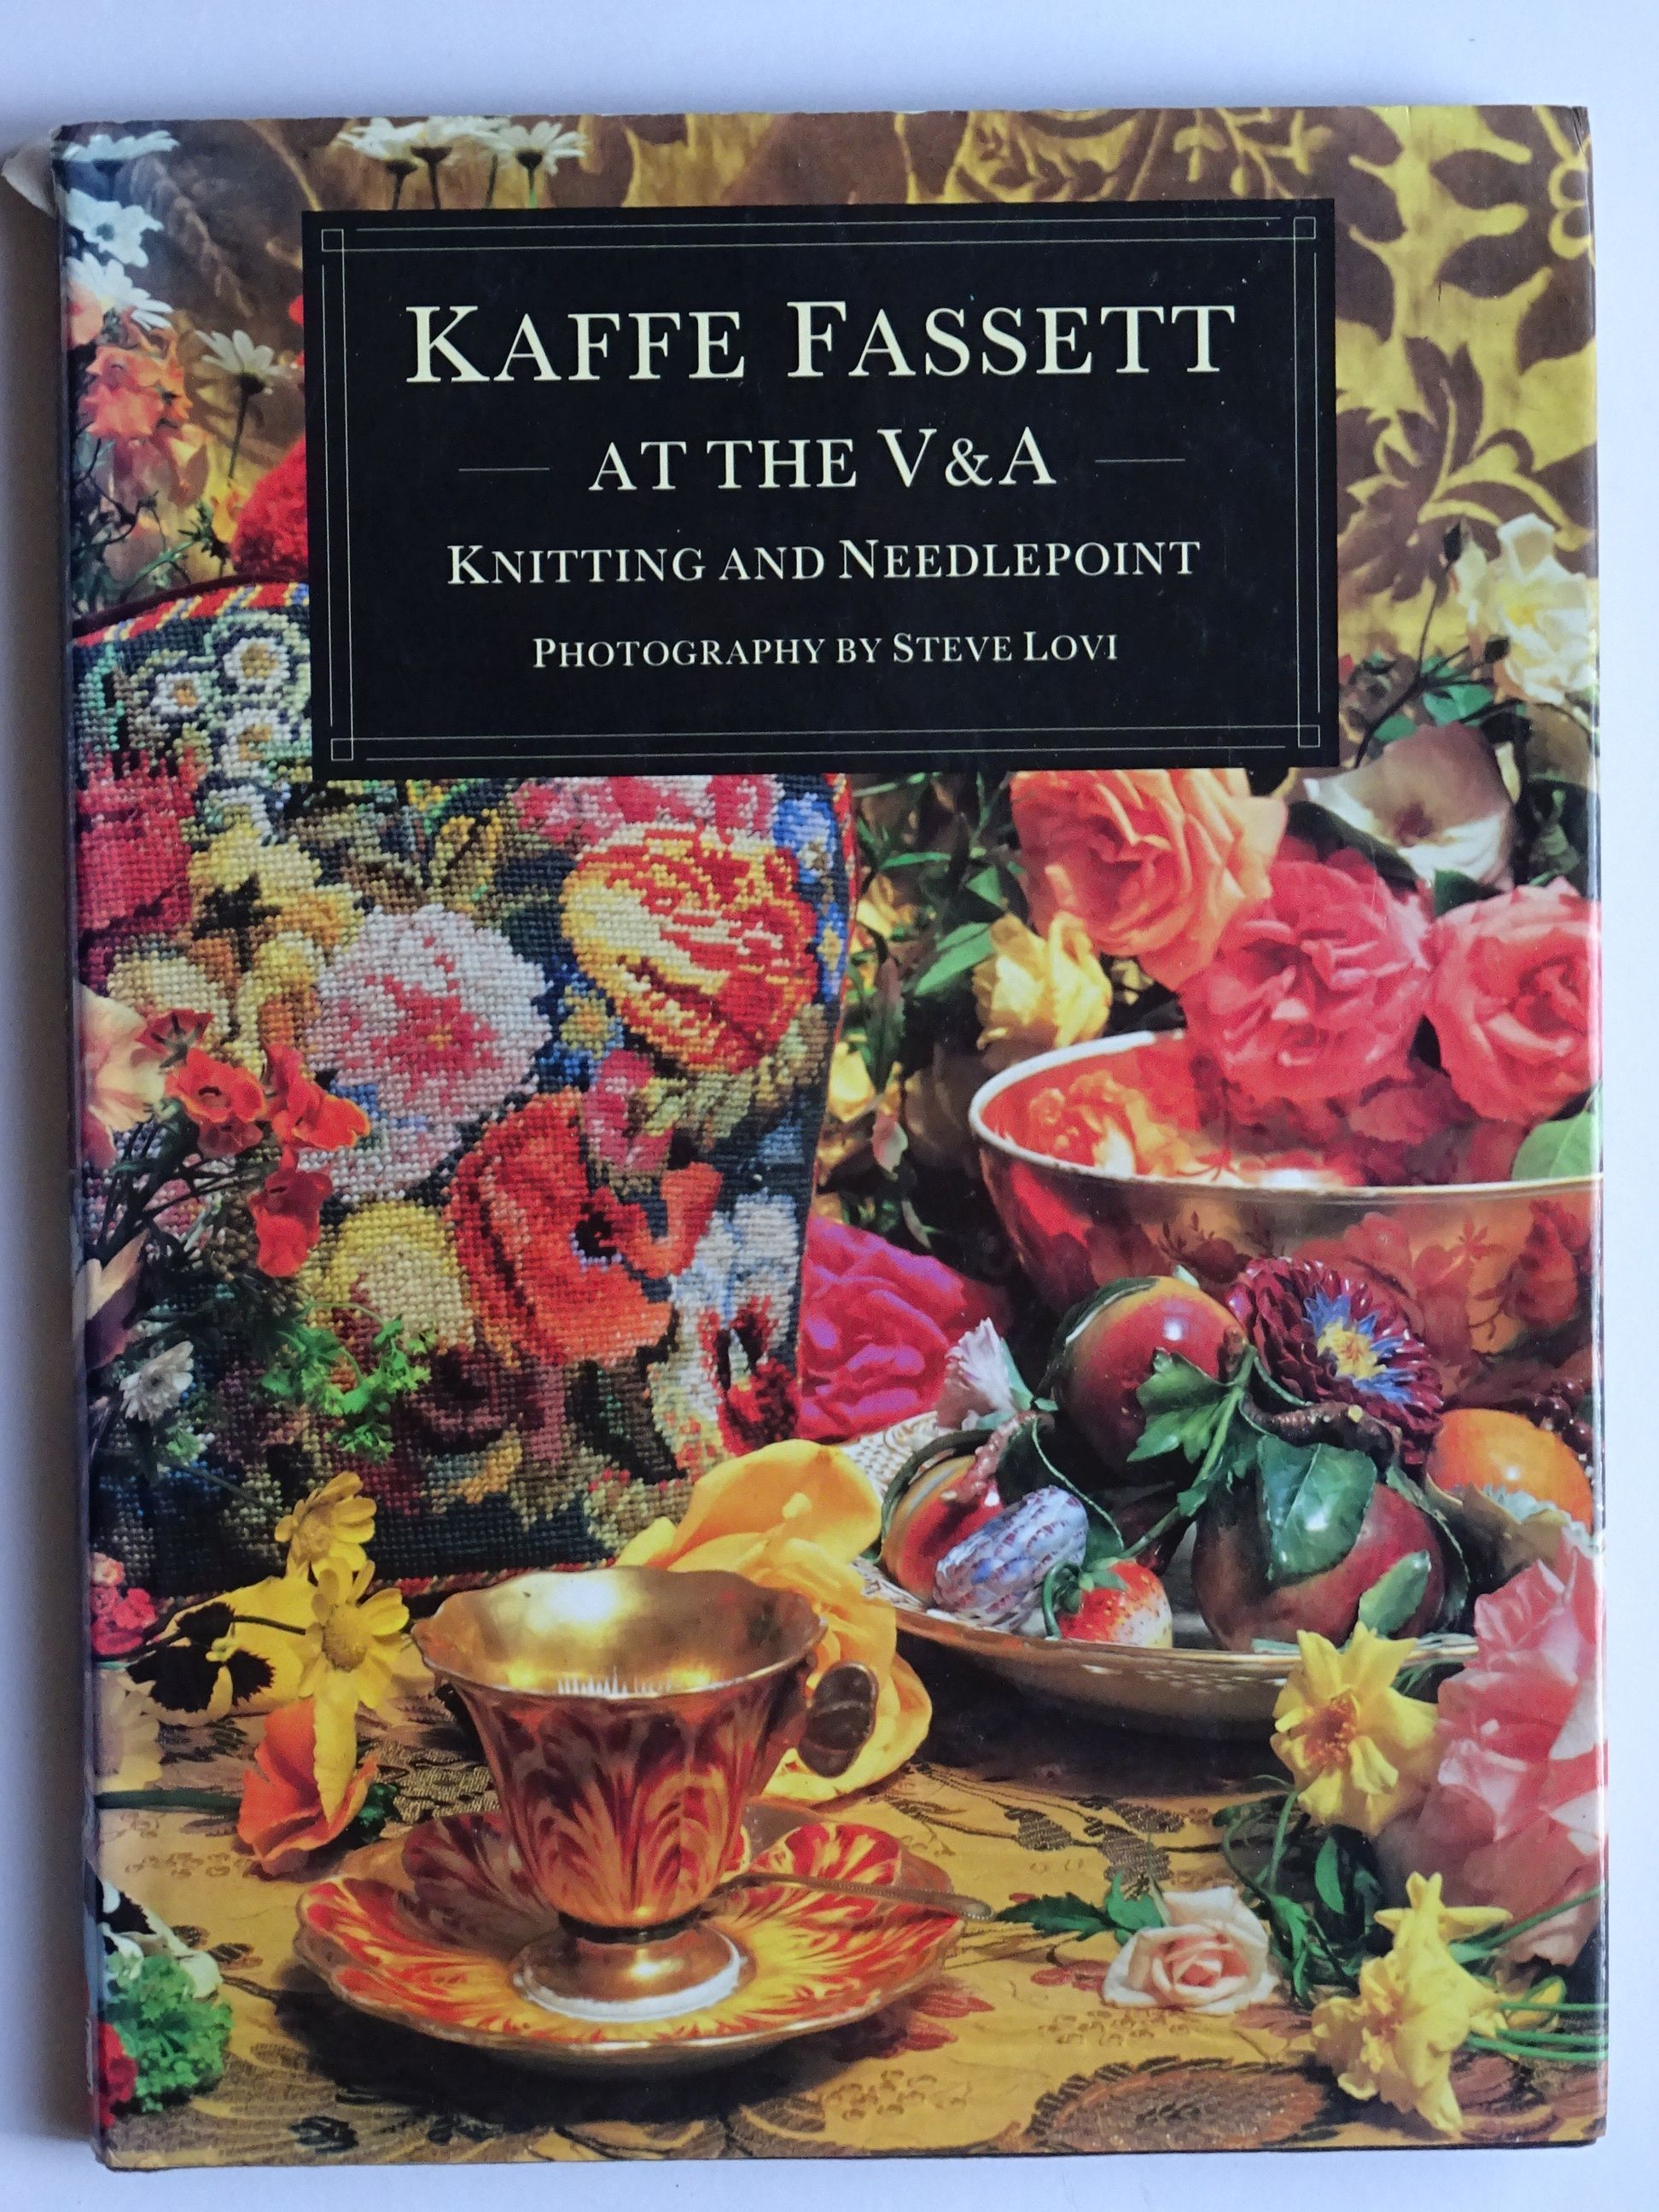 Kaffe Fassett at the V & A - Knitting and Needlepoint